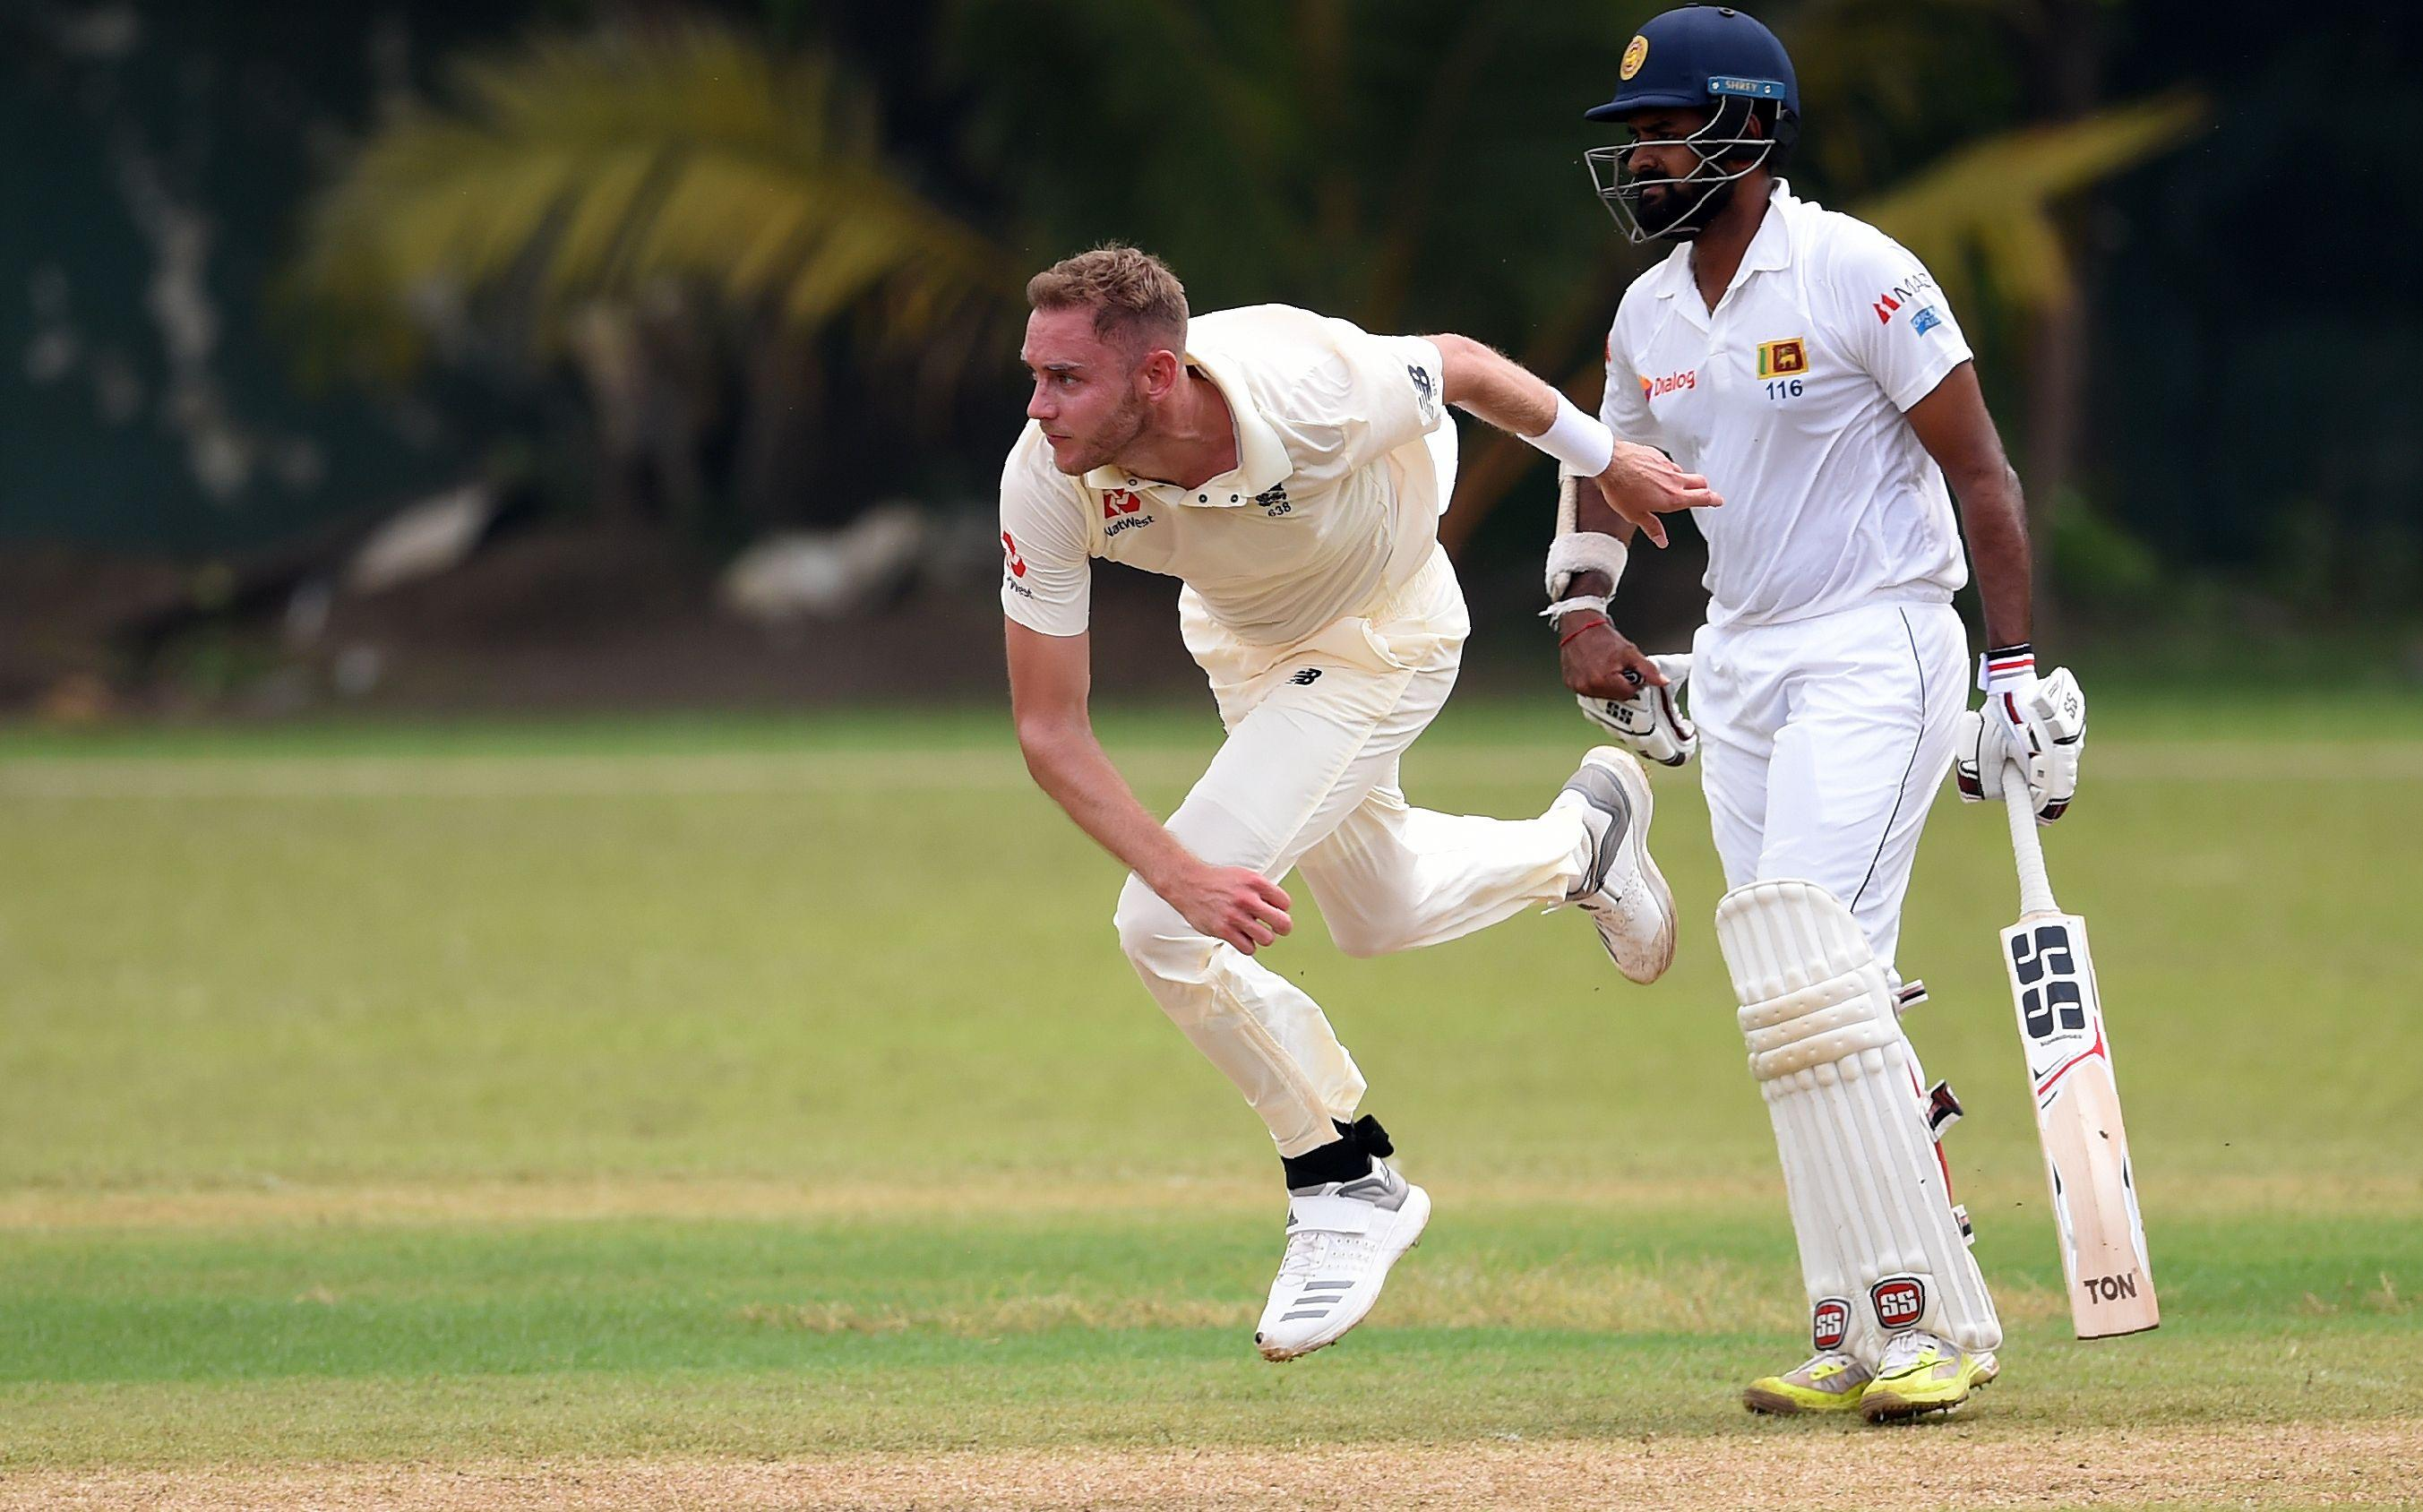 Stuart Broad went wicketless on tough day one of the warm-up game